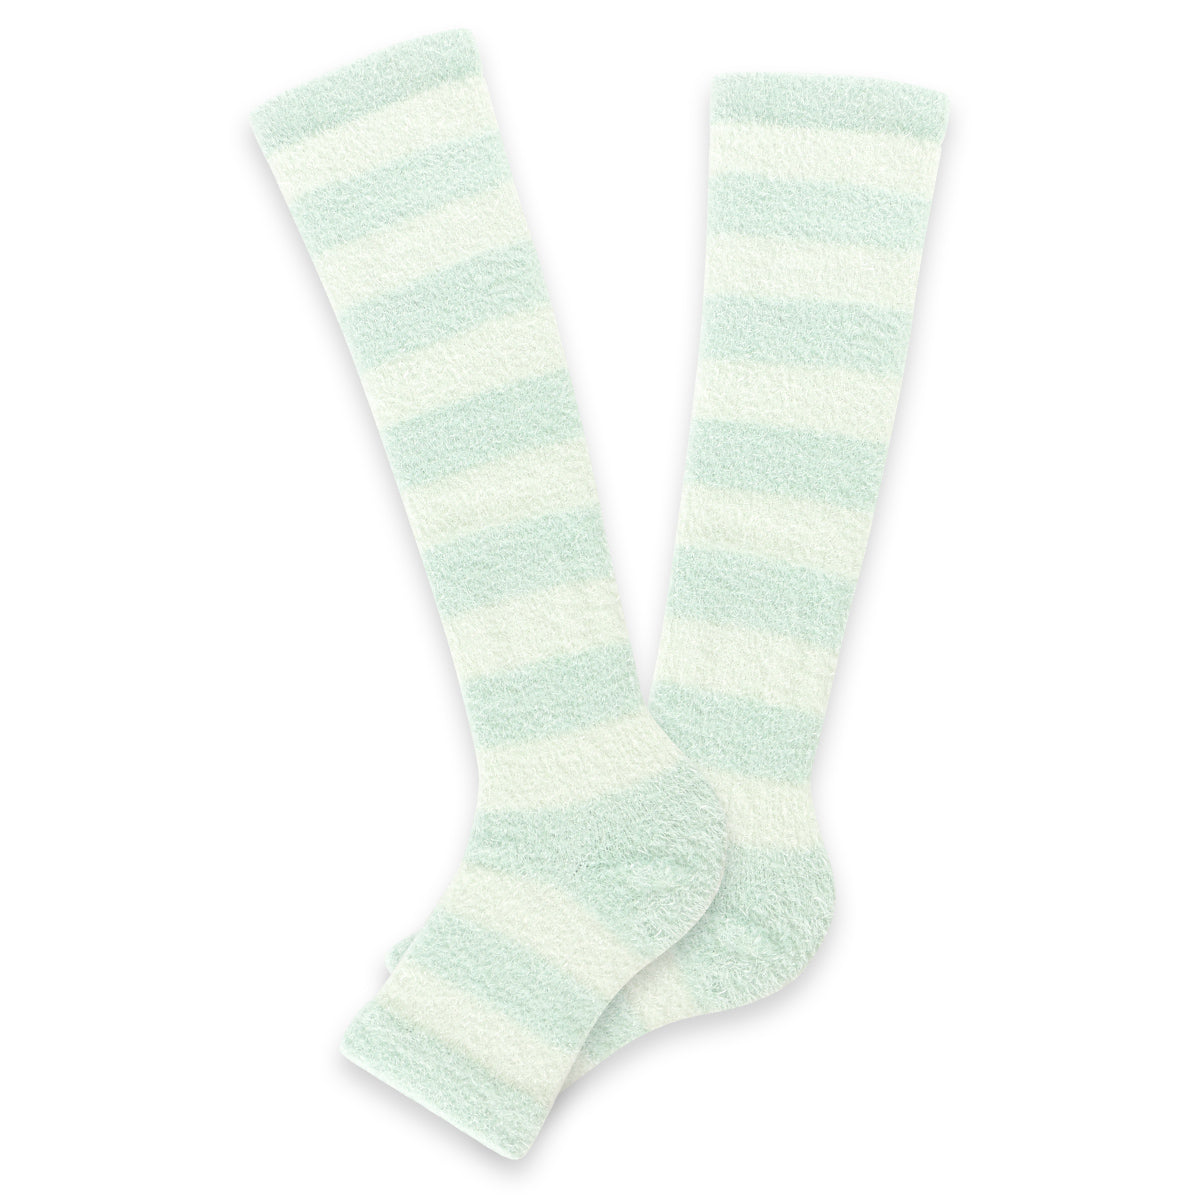 Refreshing Toeless Compression Socks | Knee-high | Mint - CHERRYSTONE by MARKET TO JAPAN LLC